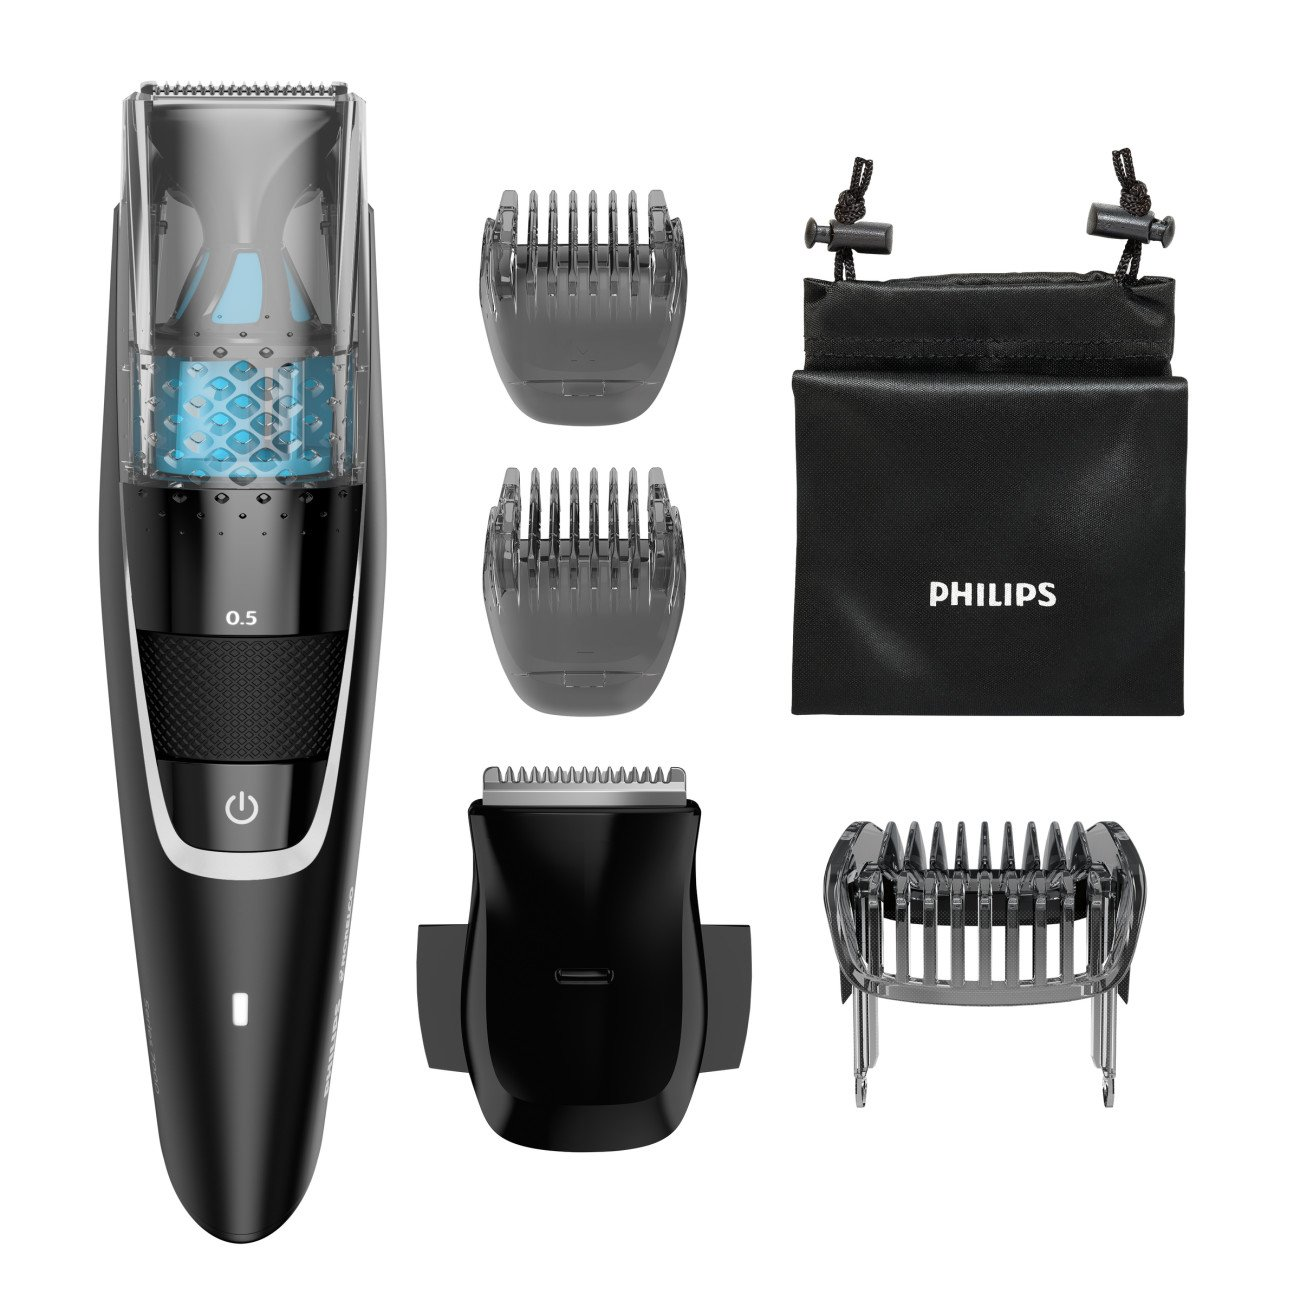 Philips norelco series 7000 beard trimmer 7300